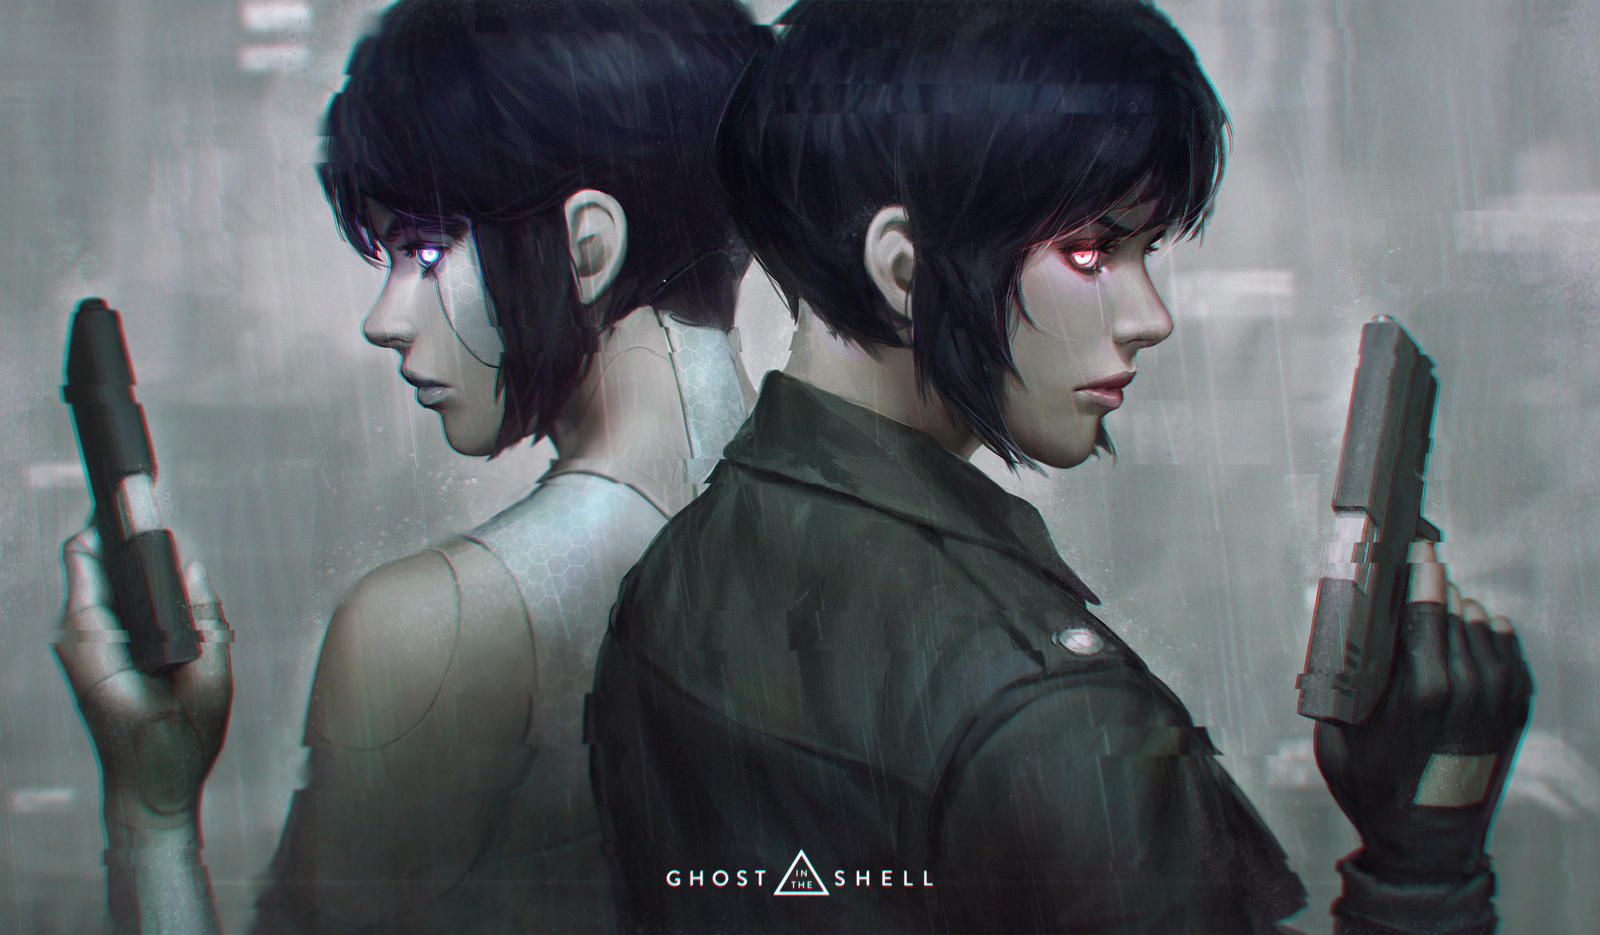 how to watch ghost in a shell